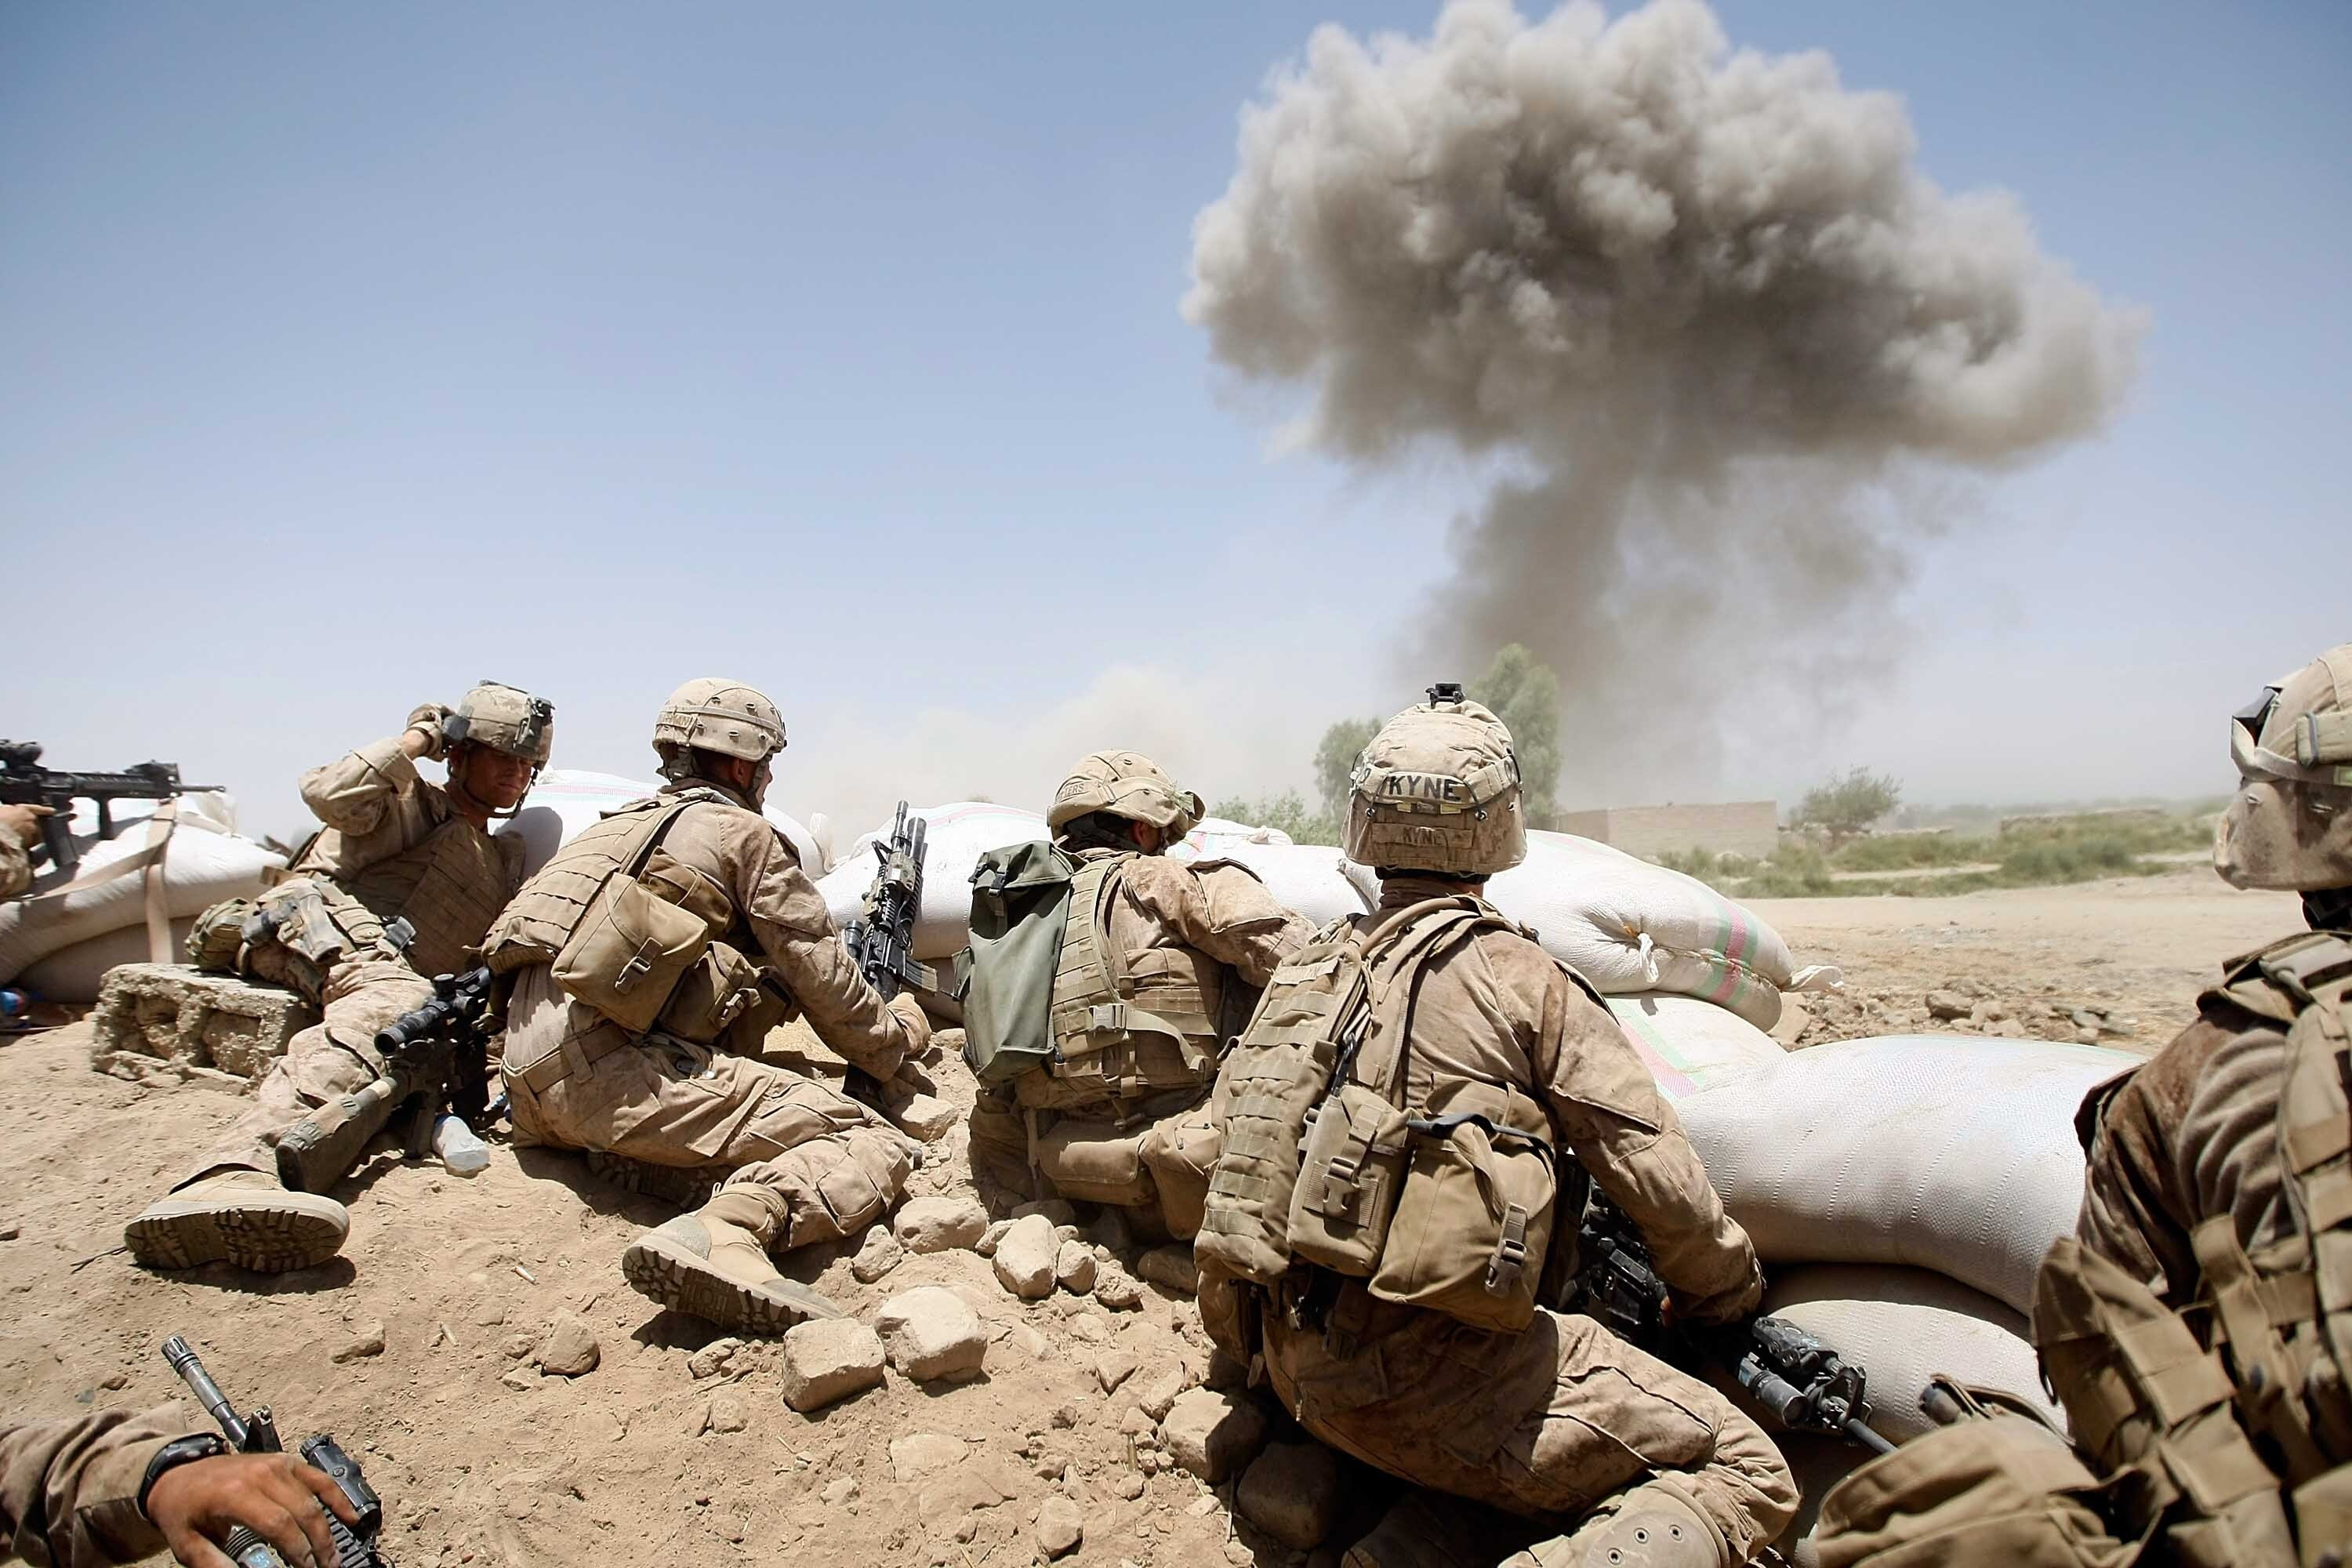 U.S. Marines from the 2nd Marine Expeditionary Brigade, RCT 2nd Battalion 8th Marines Echo Co. take cover, in Main Poshteh, Afghanistan, July 3, 2009. (Getty Images)